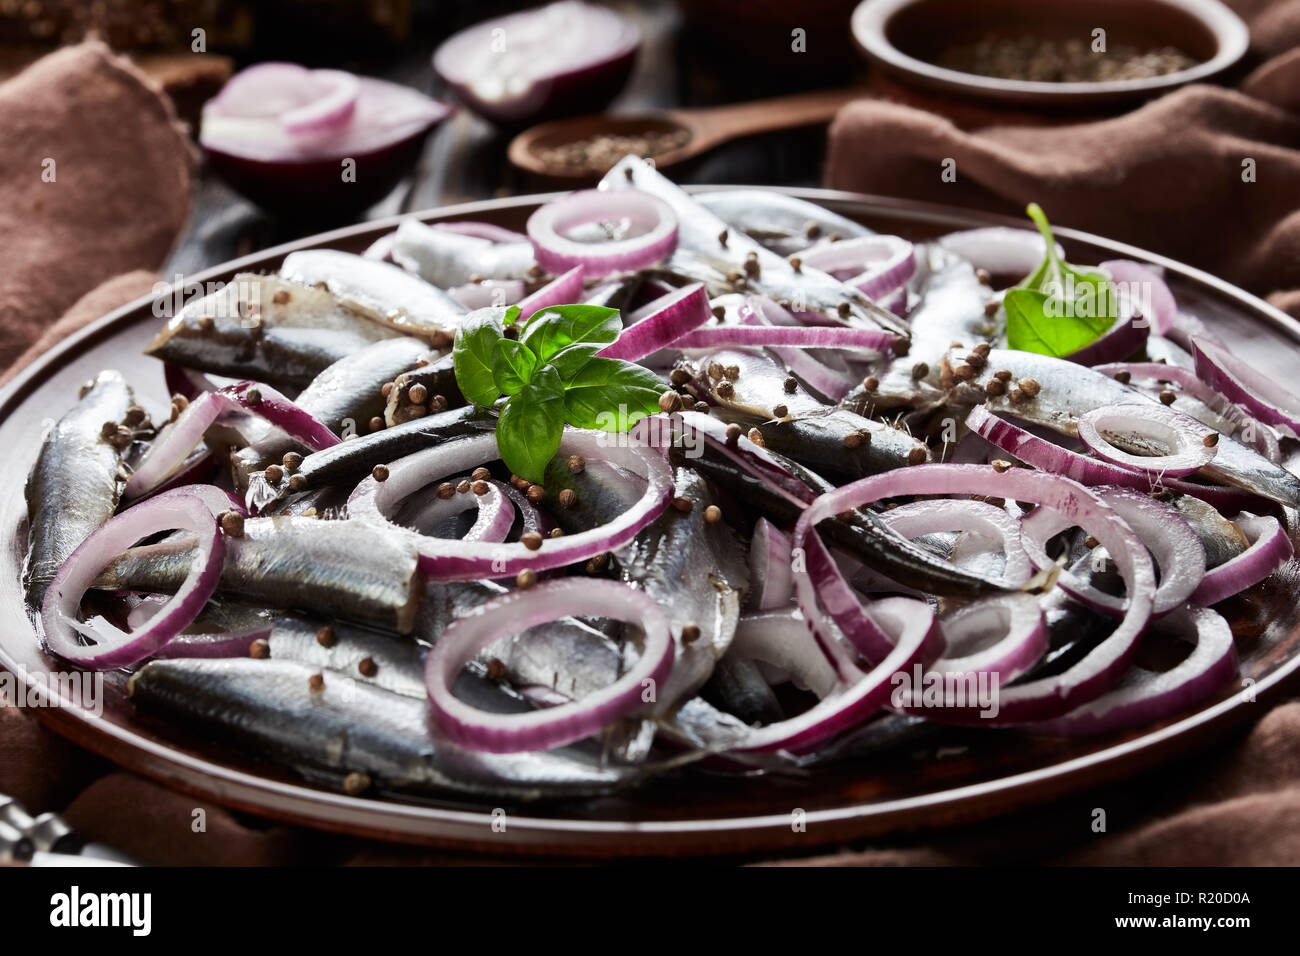 cloth-up of salted sprats marinated with red onion rings on an earthenware plate  coriander seeds, brown cloth, fork and knife on an old rustic wooden - Stock Image